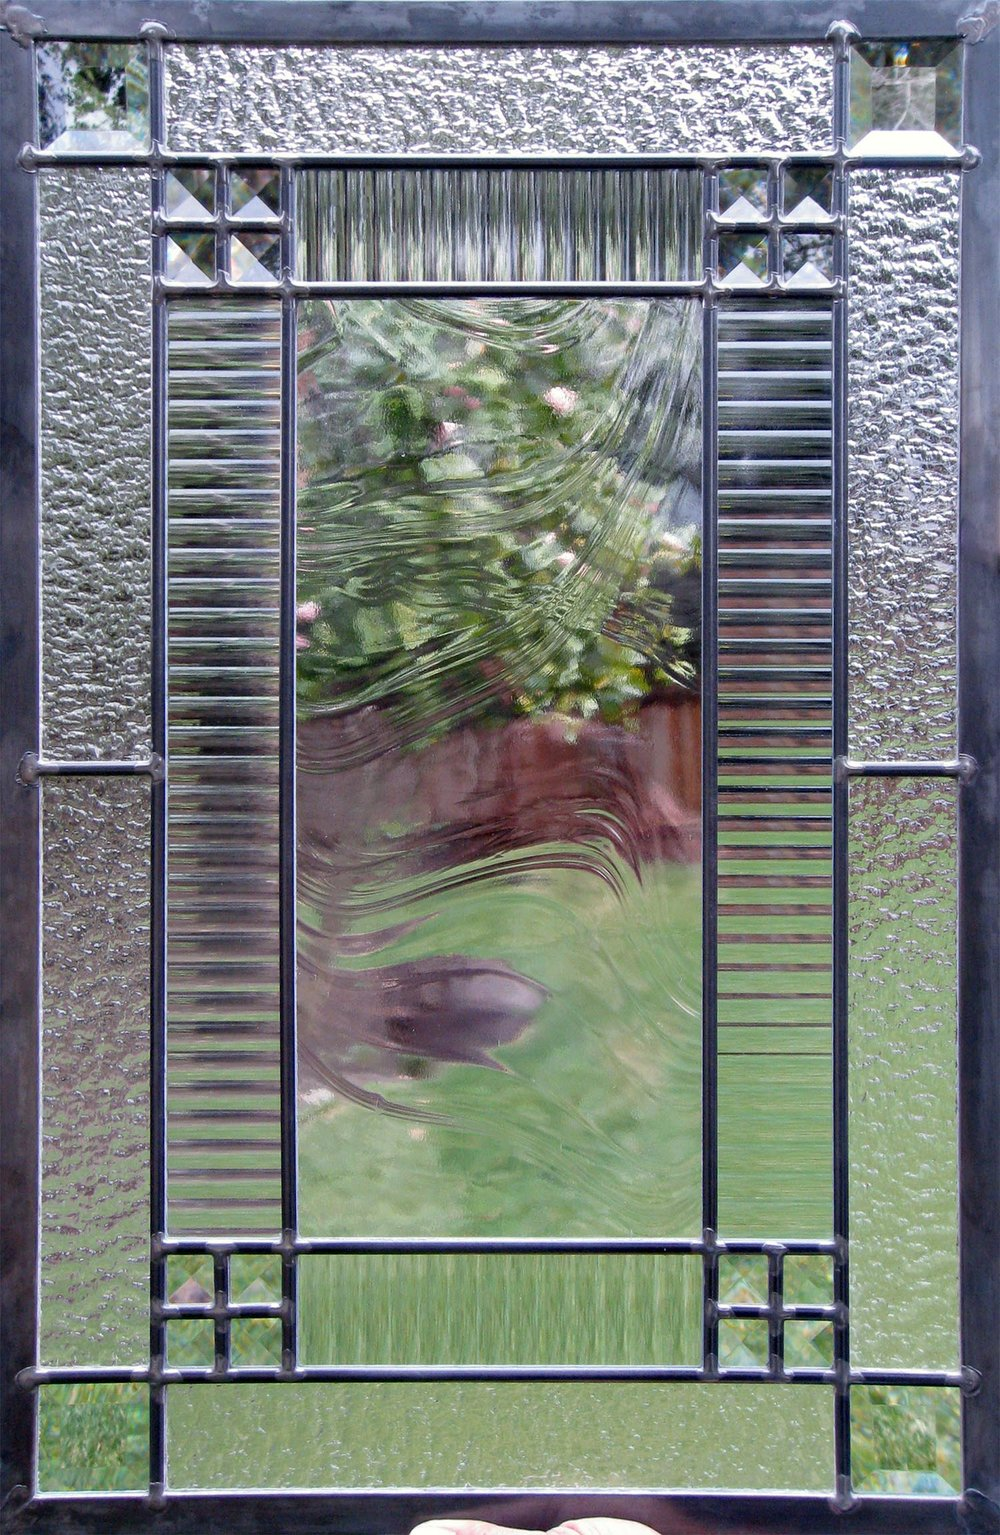 art deco granite clear texture glass baroque craftsman leaded glass stained glass window palo alto atherton california san francisco san jose.jpg